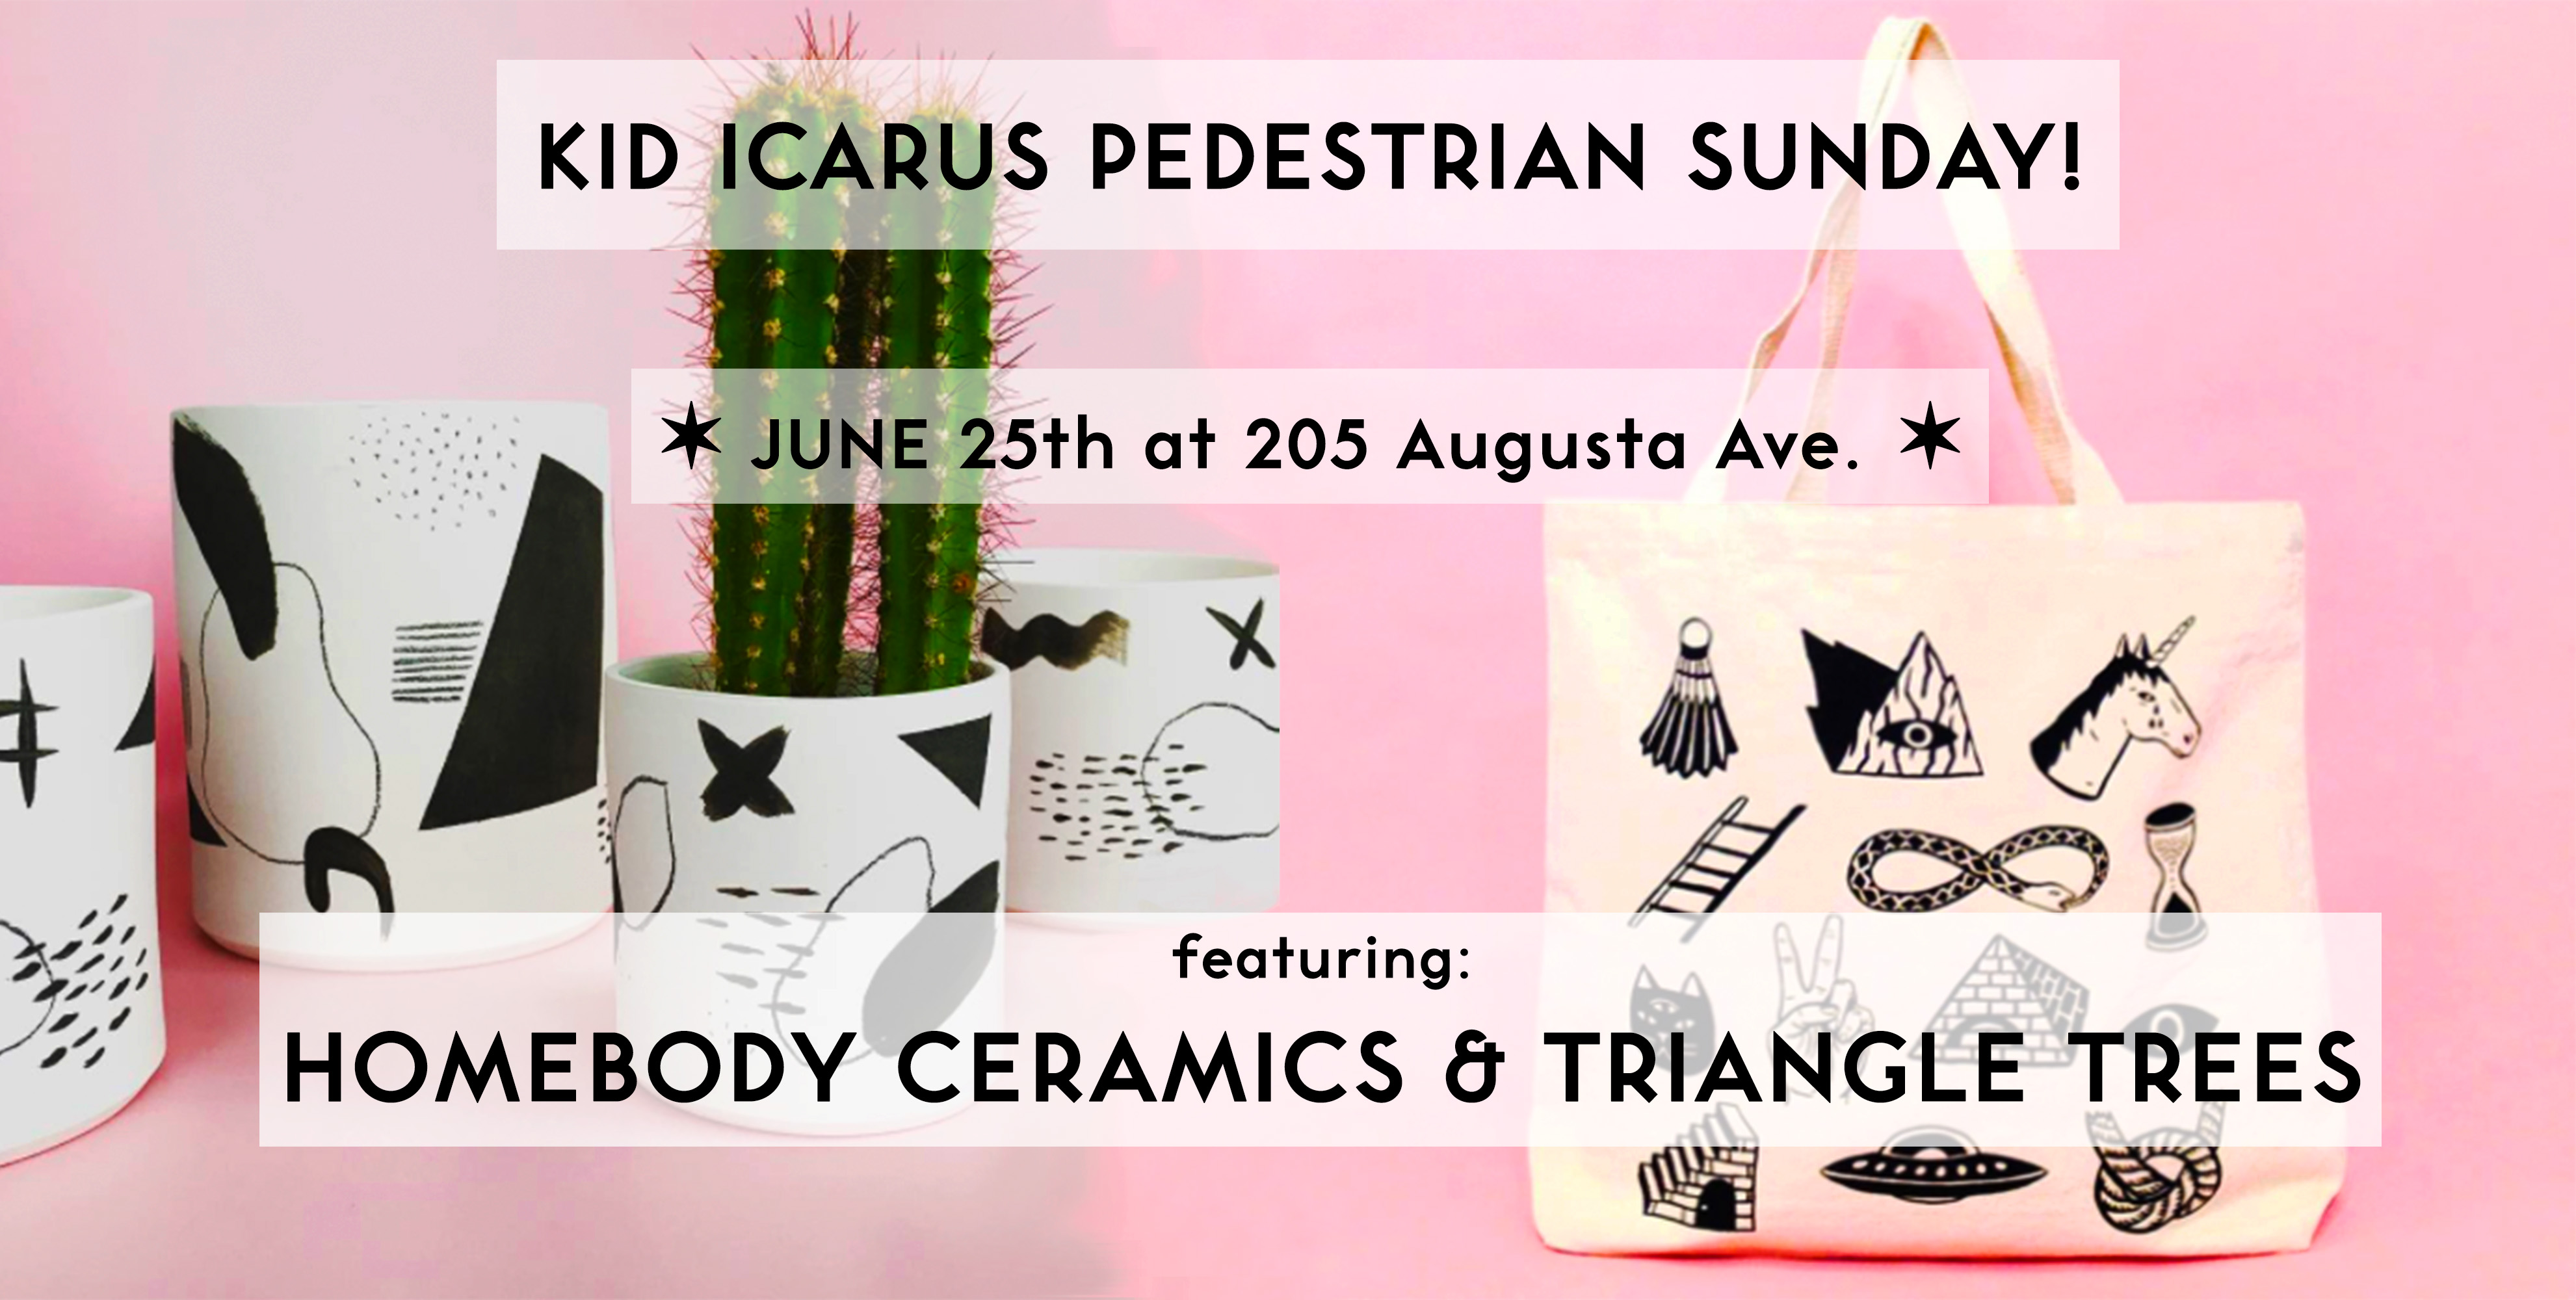 June 25th Pedestrian Sunday!